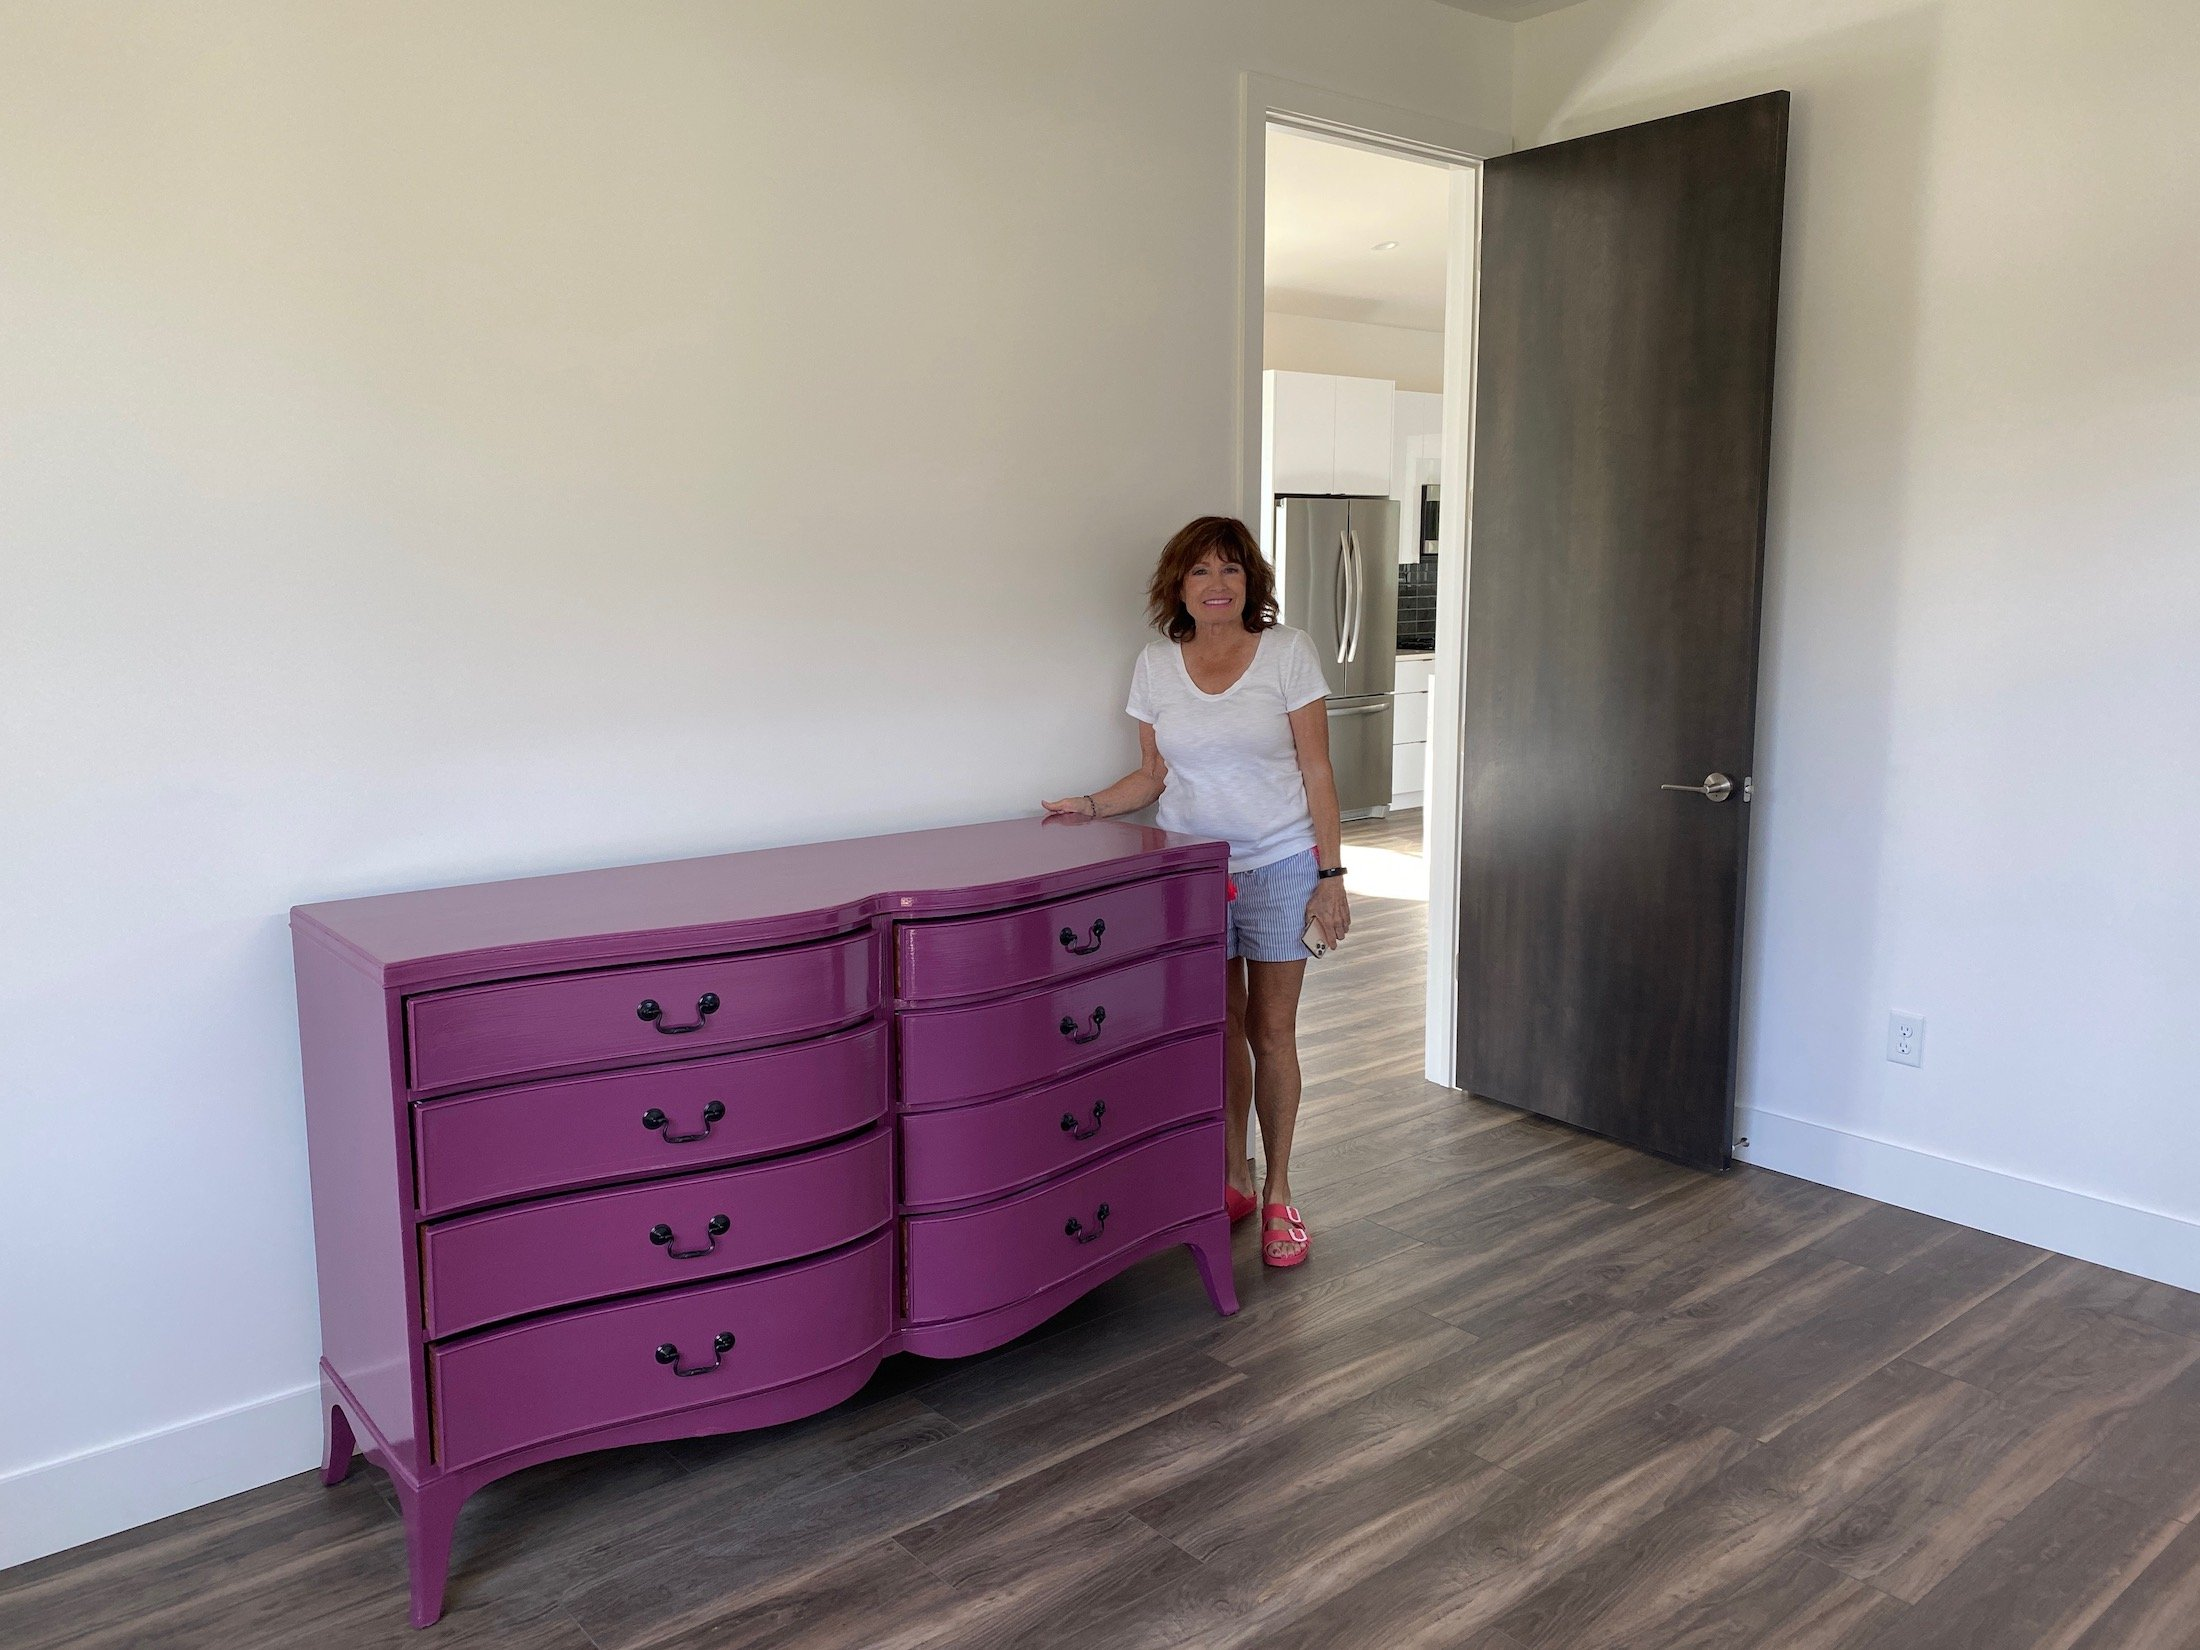 Moreover, the new mulberry colored dresser creates a happy room. Aunt Pam is standing beside it in the picture. Also, There are white walls and a black door.